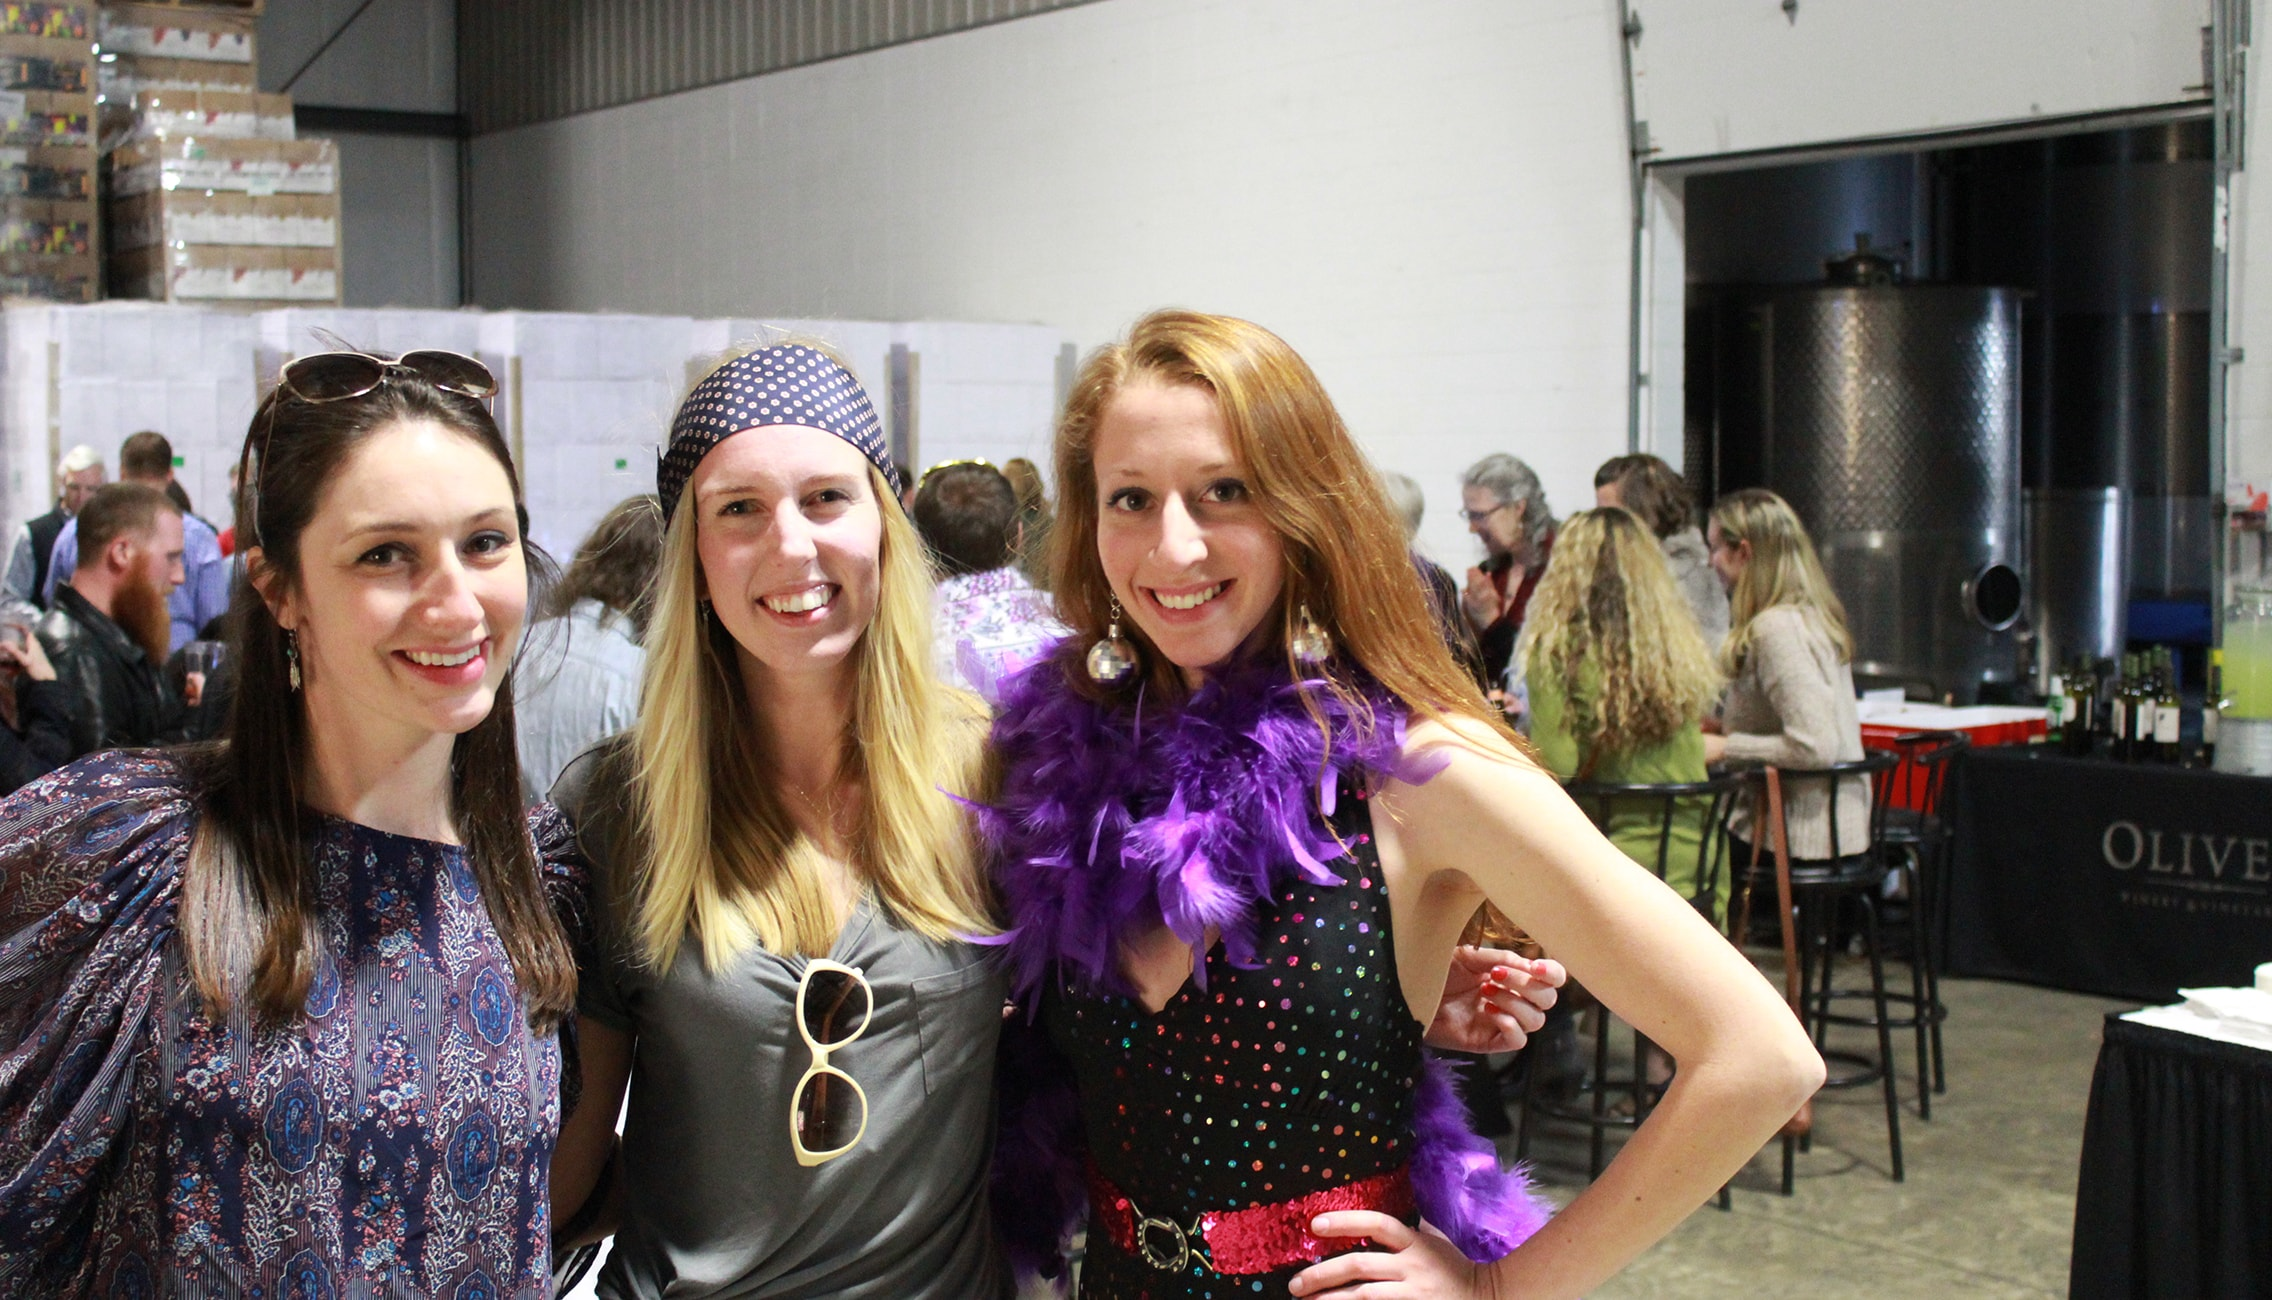 Disco-themed costumes and casino games during Oliver Winery's annual Casino Night.